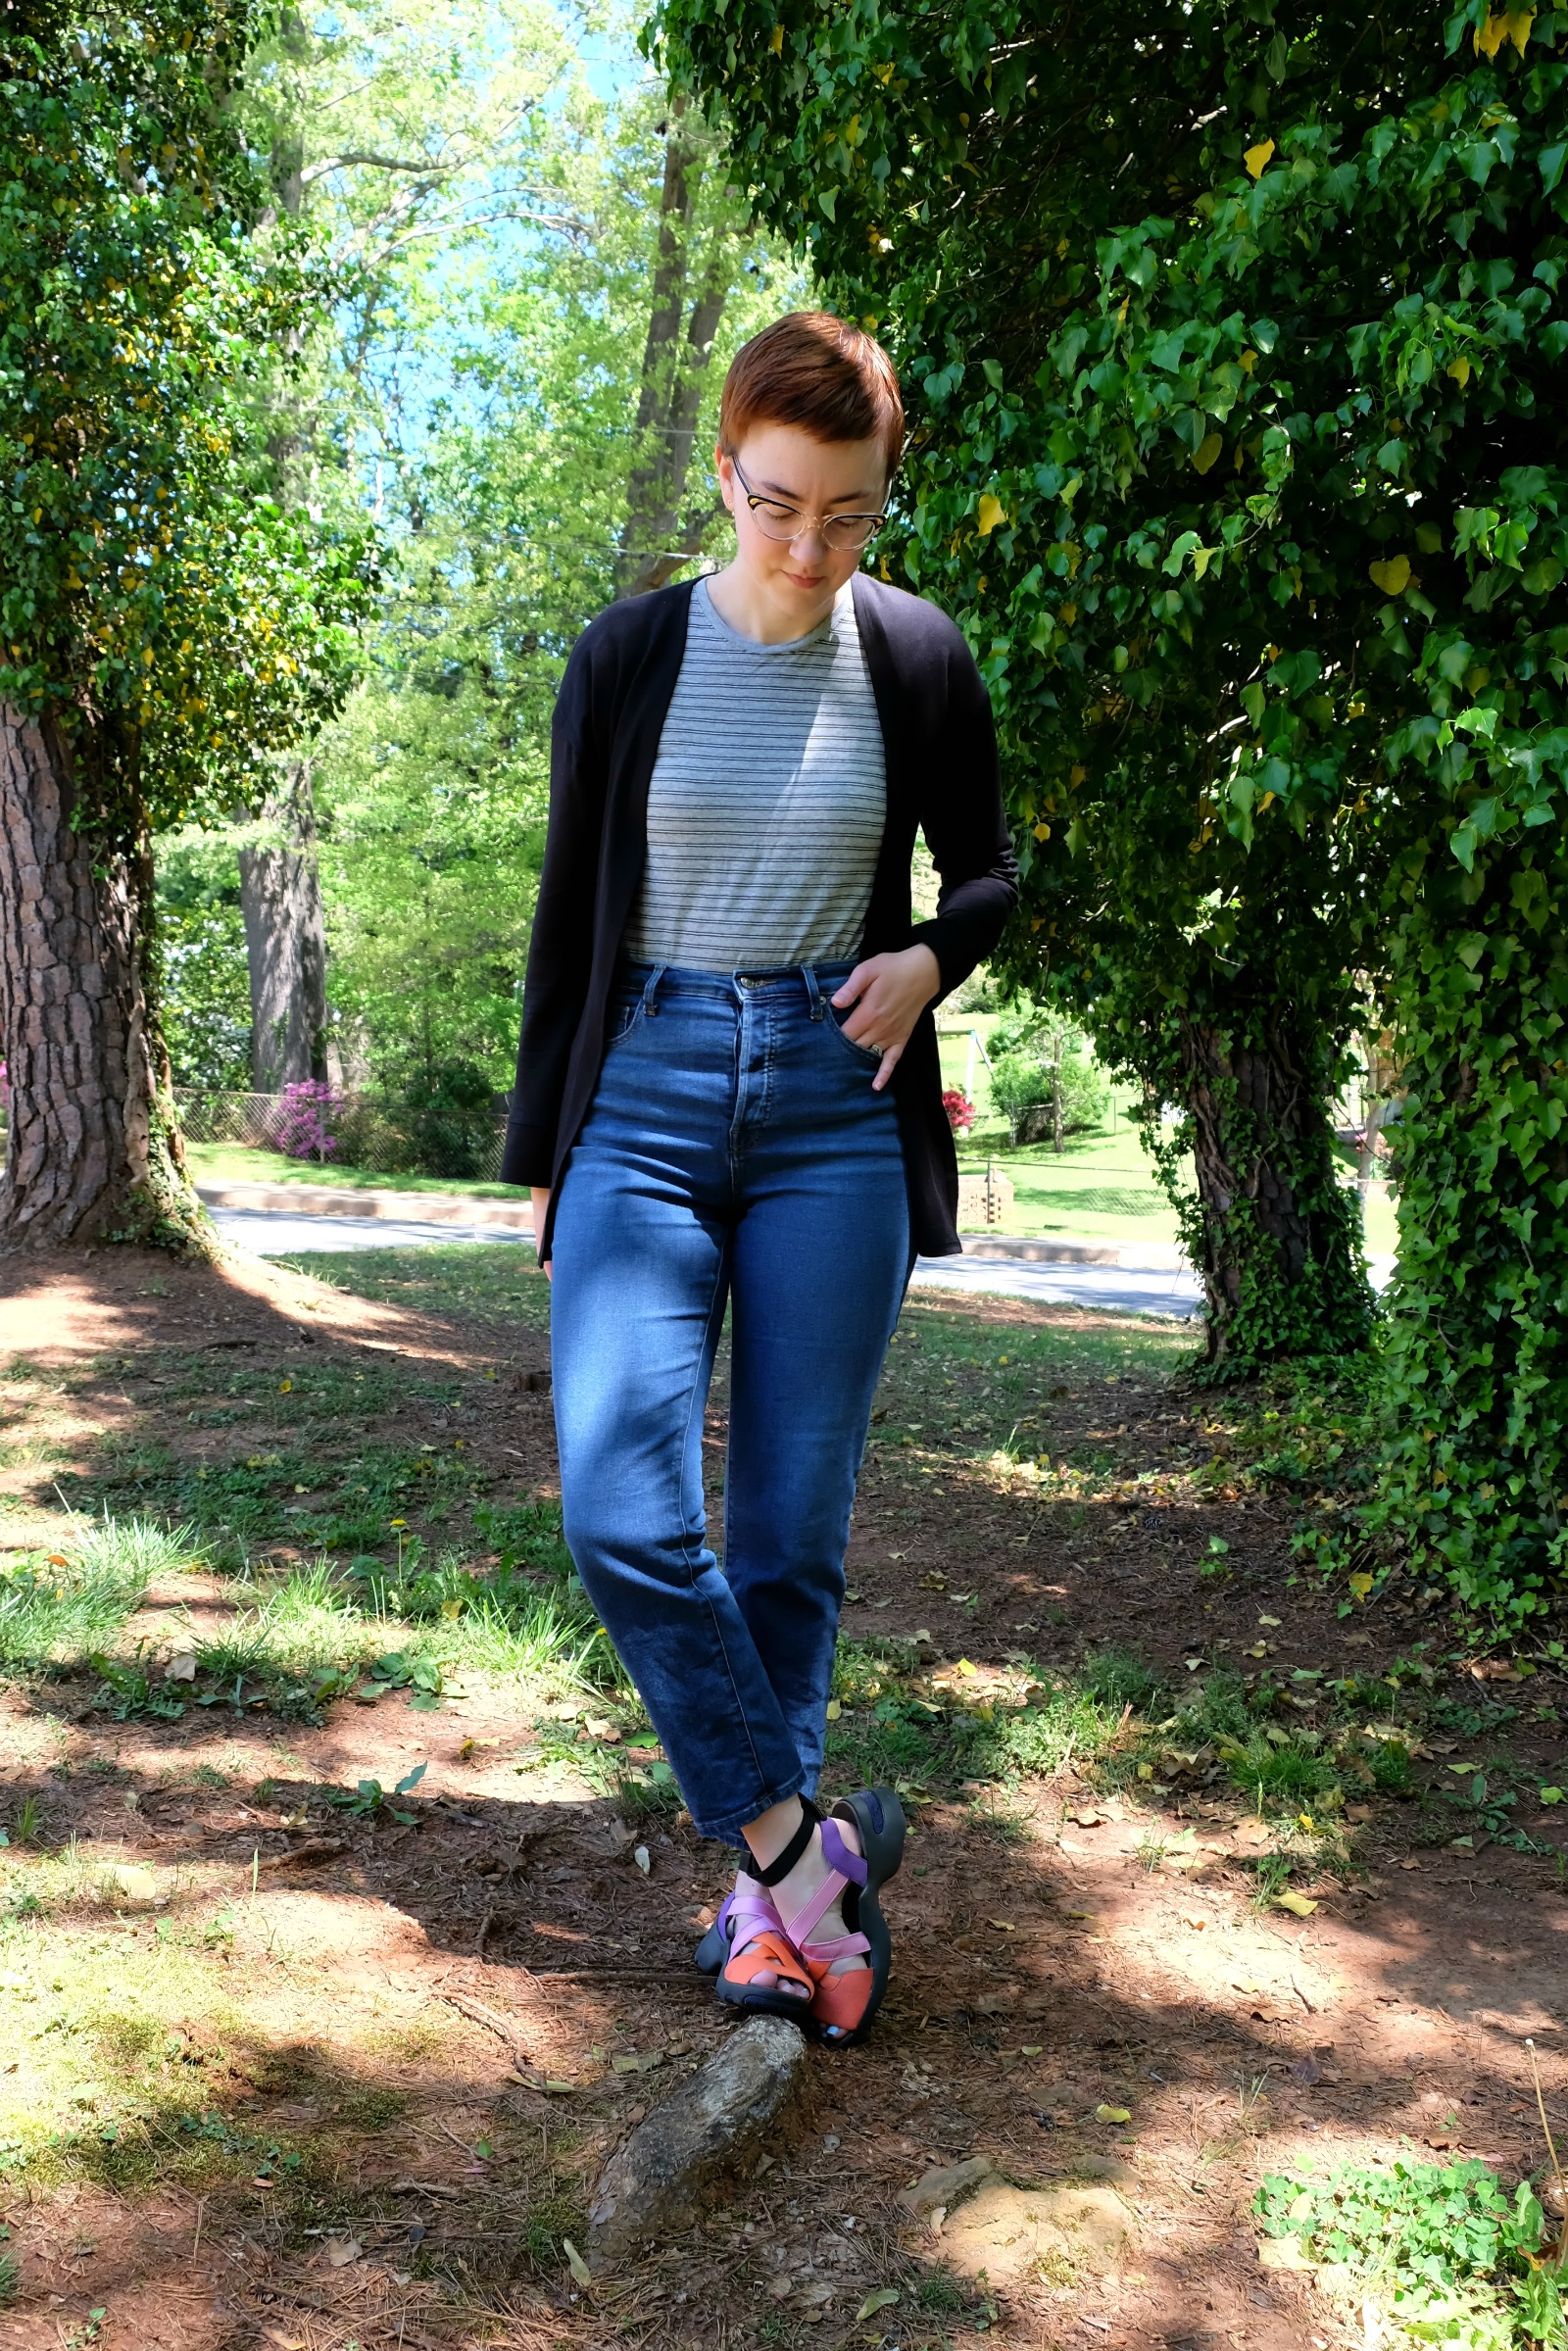 Ethical Details: Cardigan - c/o  LA Relaxed ; Tee and Jeans -  Everlane ; Sandals - secondhand Camper; Earrings -  Bario Neal